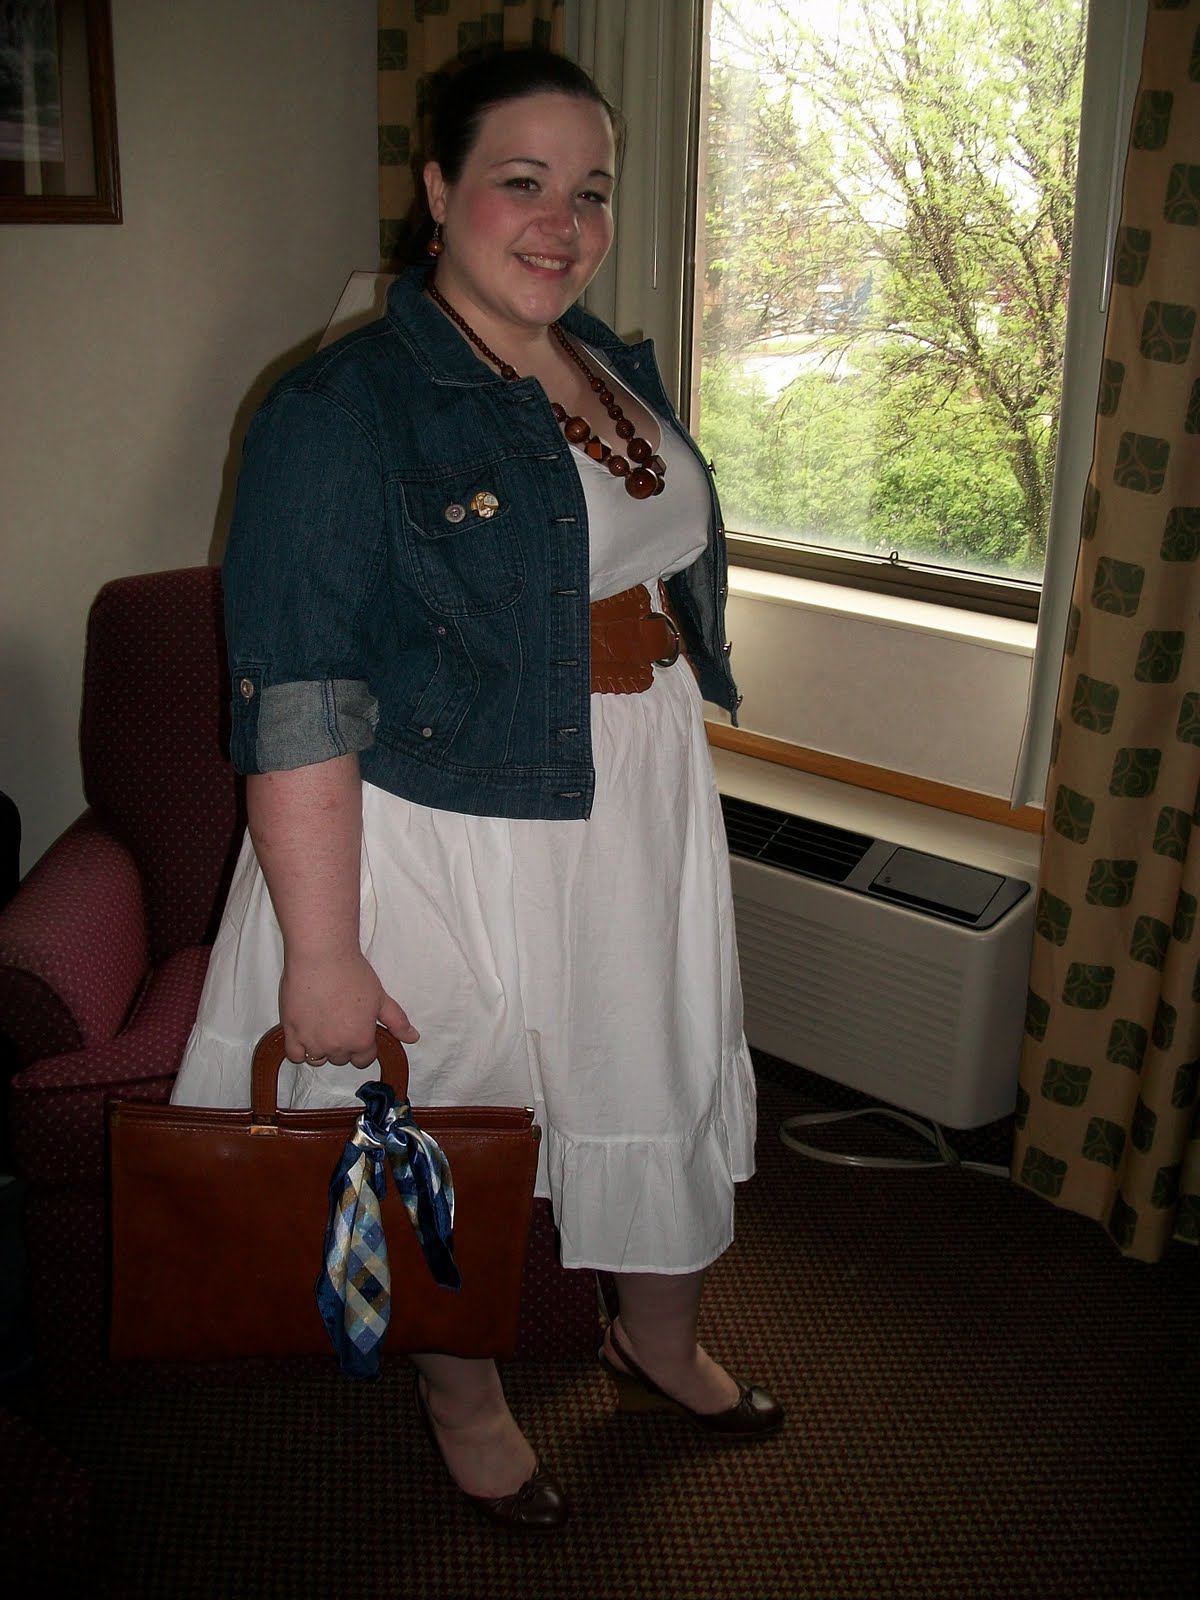 Curvy Canadian Conference Day 3 Outfit